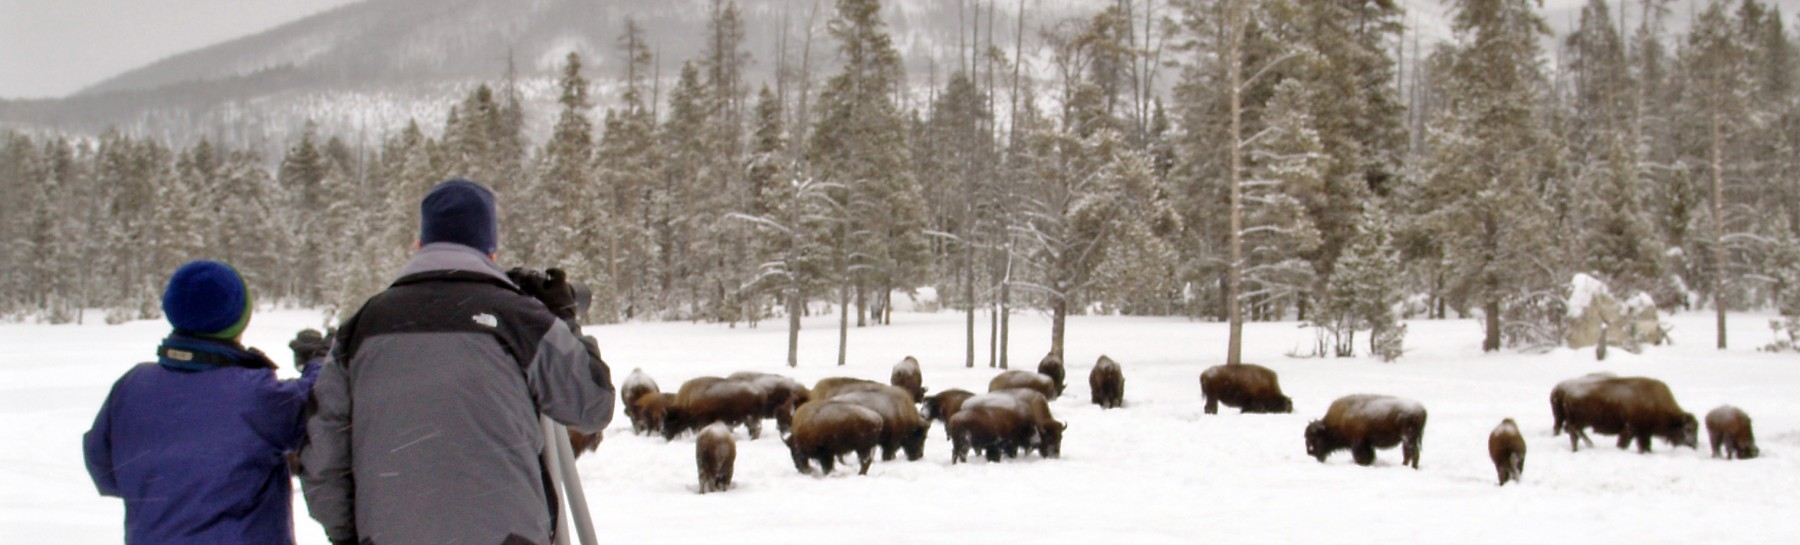 Winter Yellowstone Tour (16)